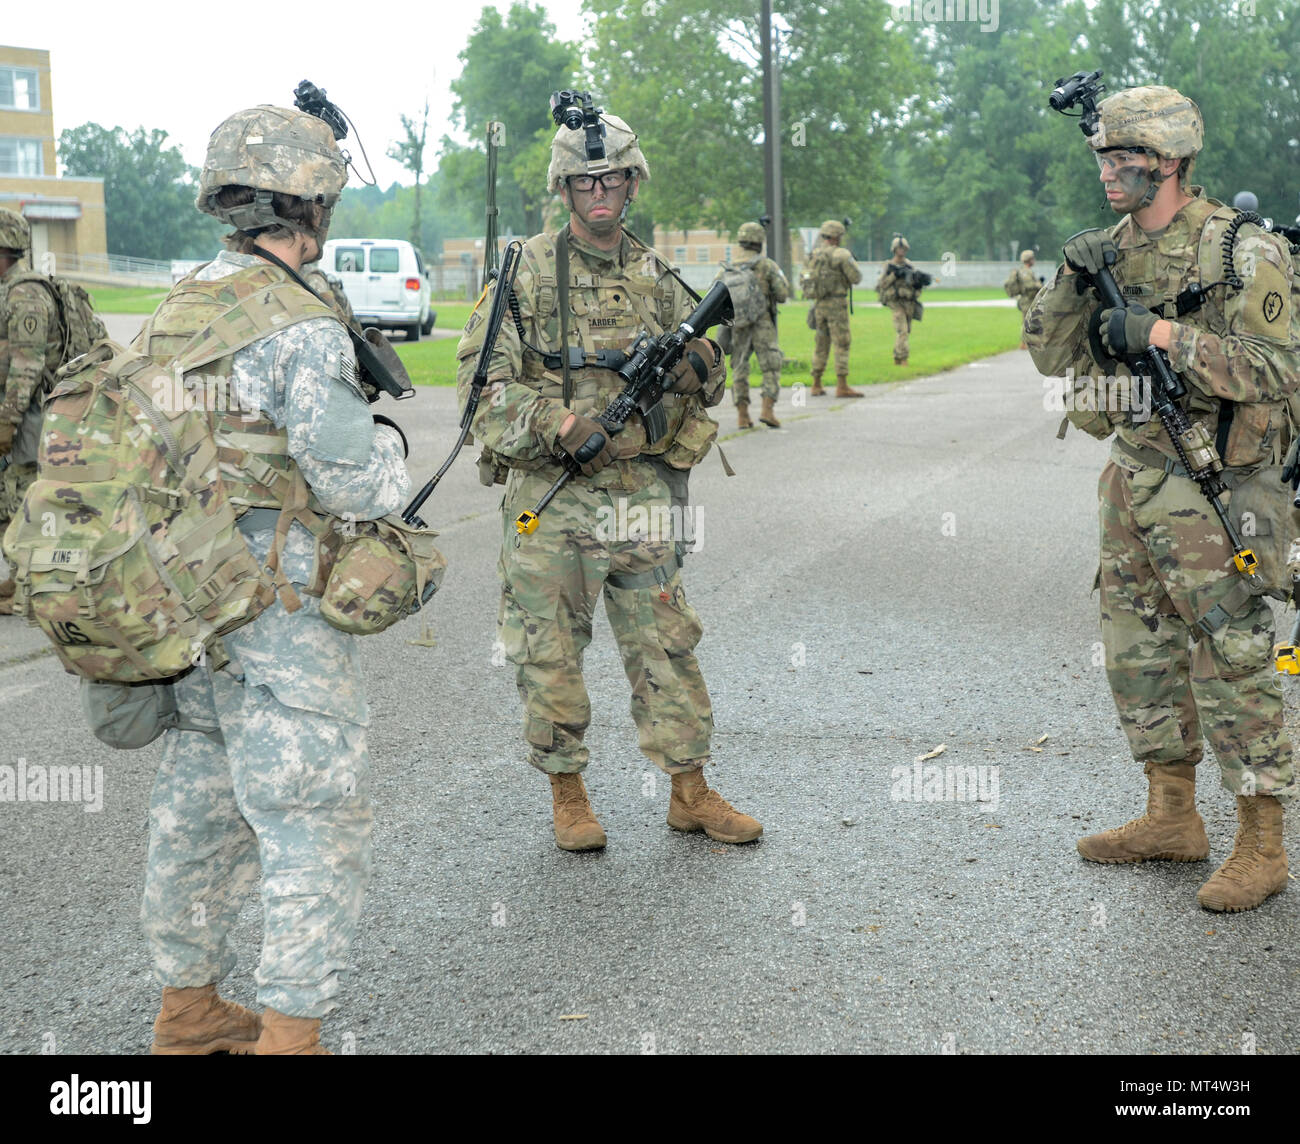 US Army Soldiers Assigned To The 65th Brigade Engineer Battalion BEB 2nd Combat Team 25th Infantry Division Review Their Strategy Before